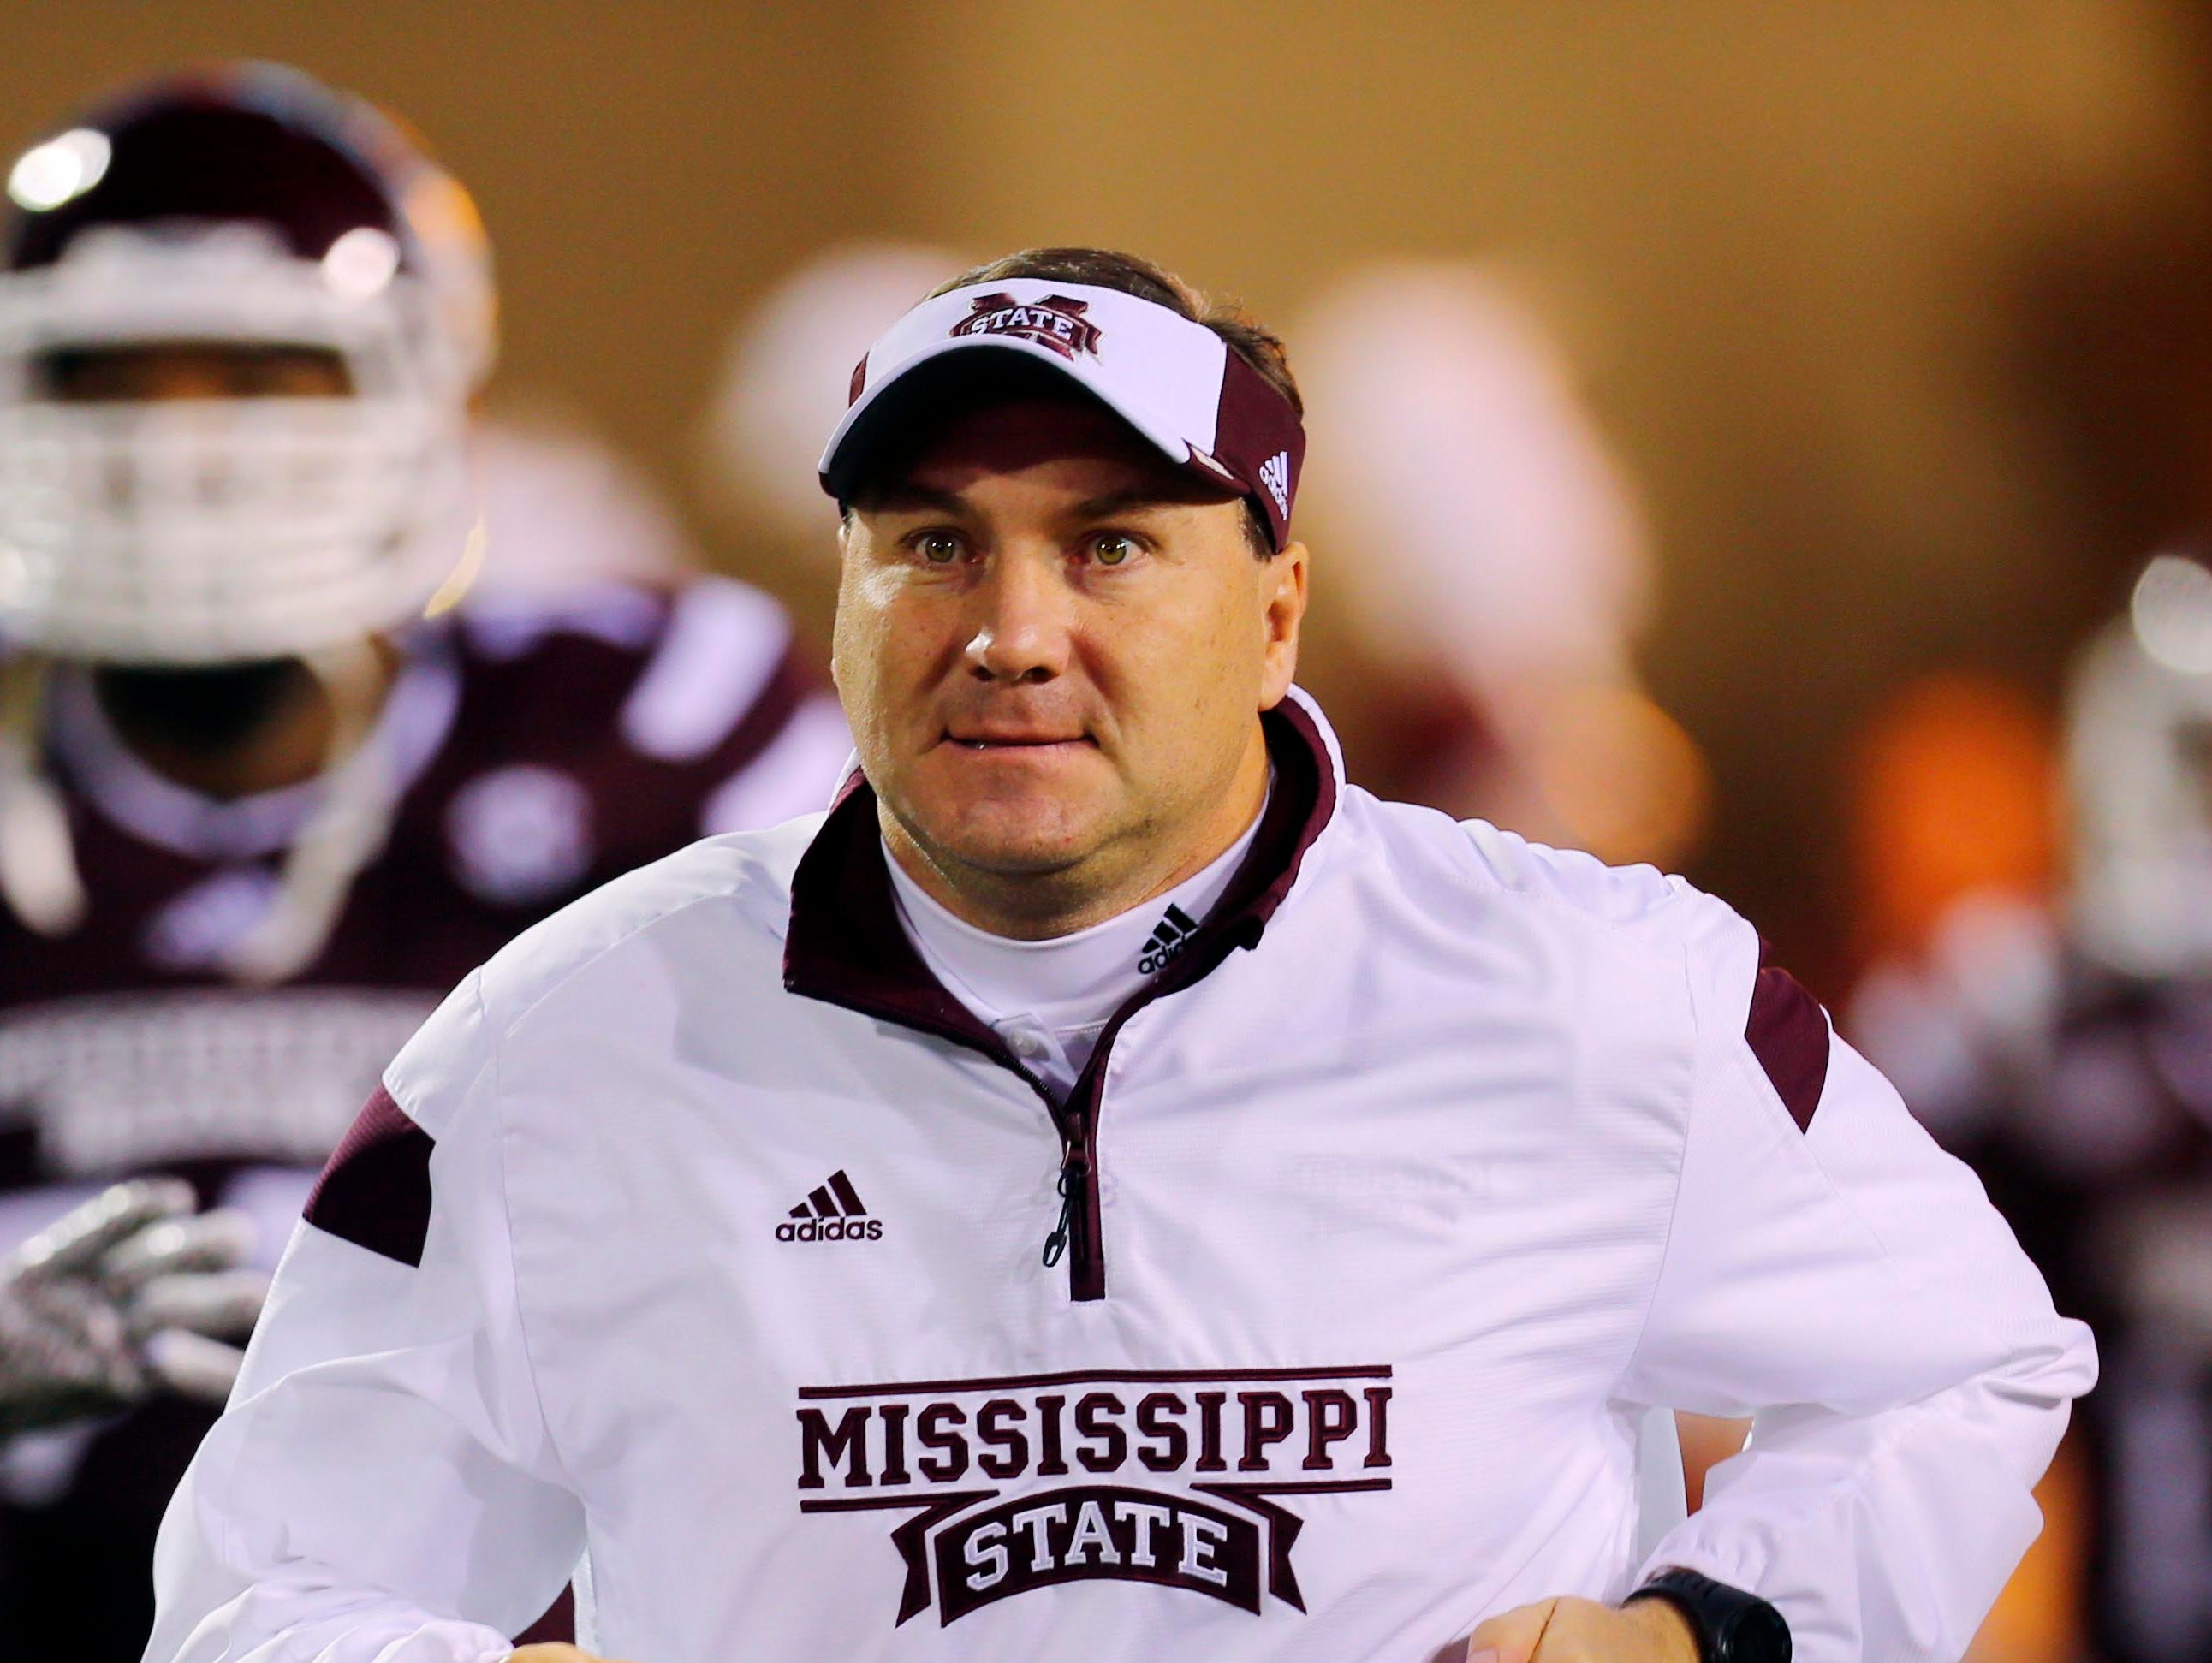 Mississippi State and Arkansas will kick at 6 p.m. on ESPN on Nov. 21.